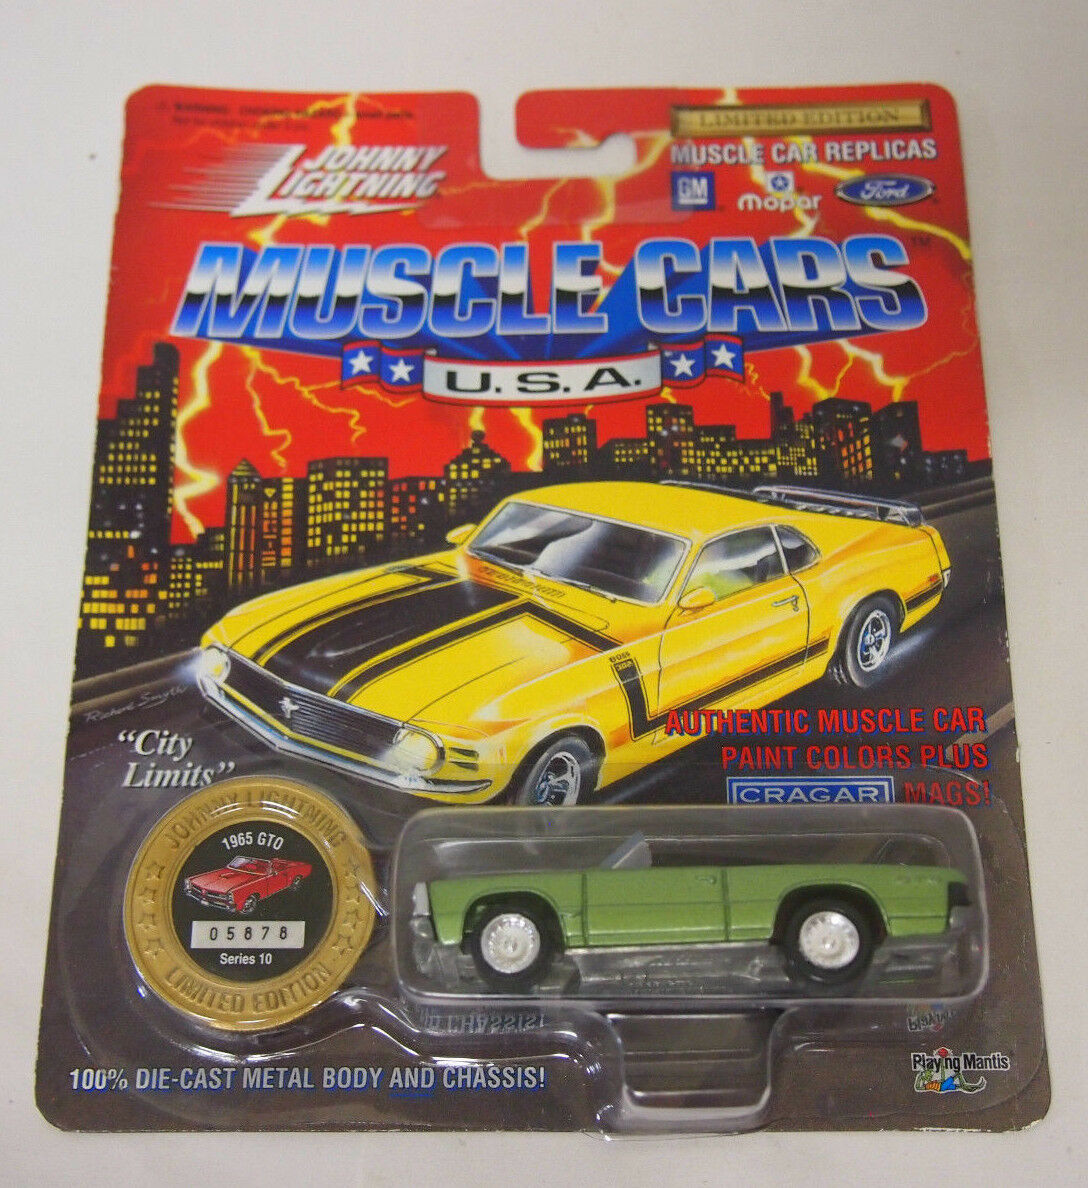 Johnny Lightning Muscle Cars USA I 1965 GTO Series 10 Limited ...